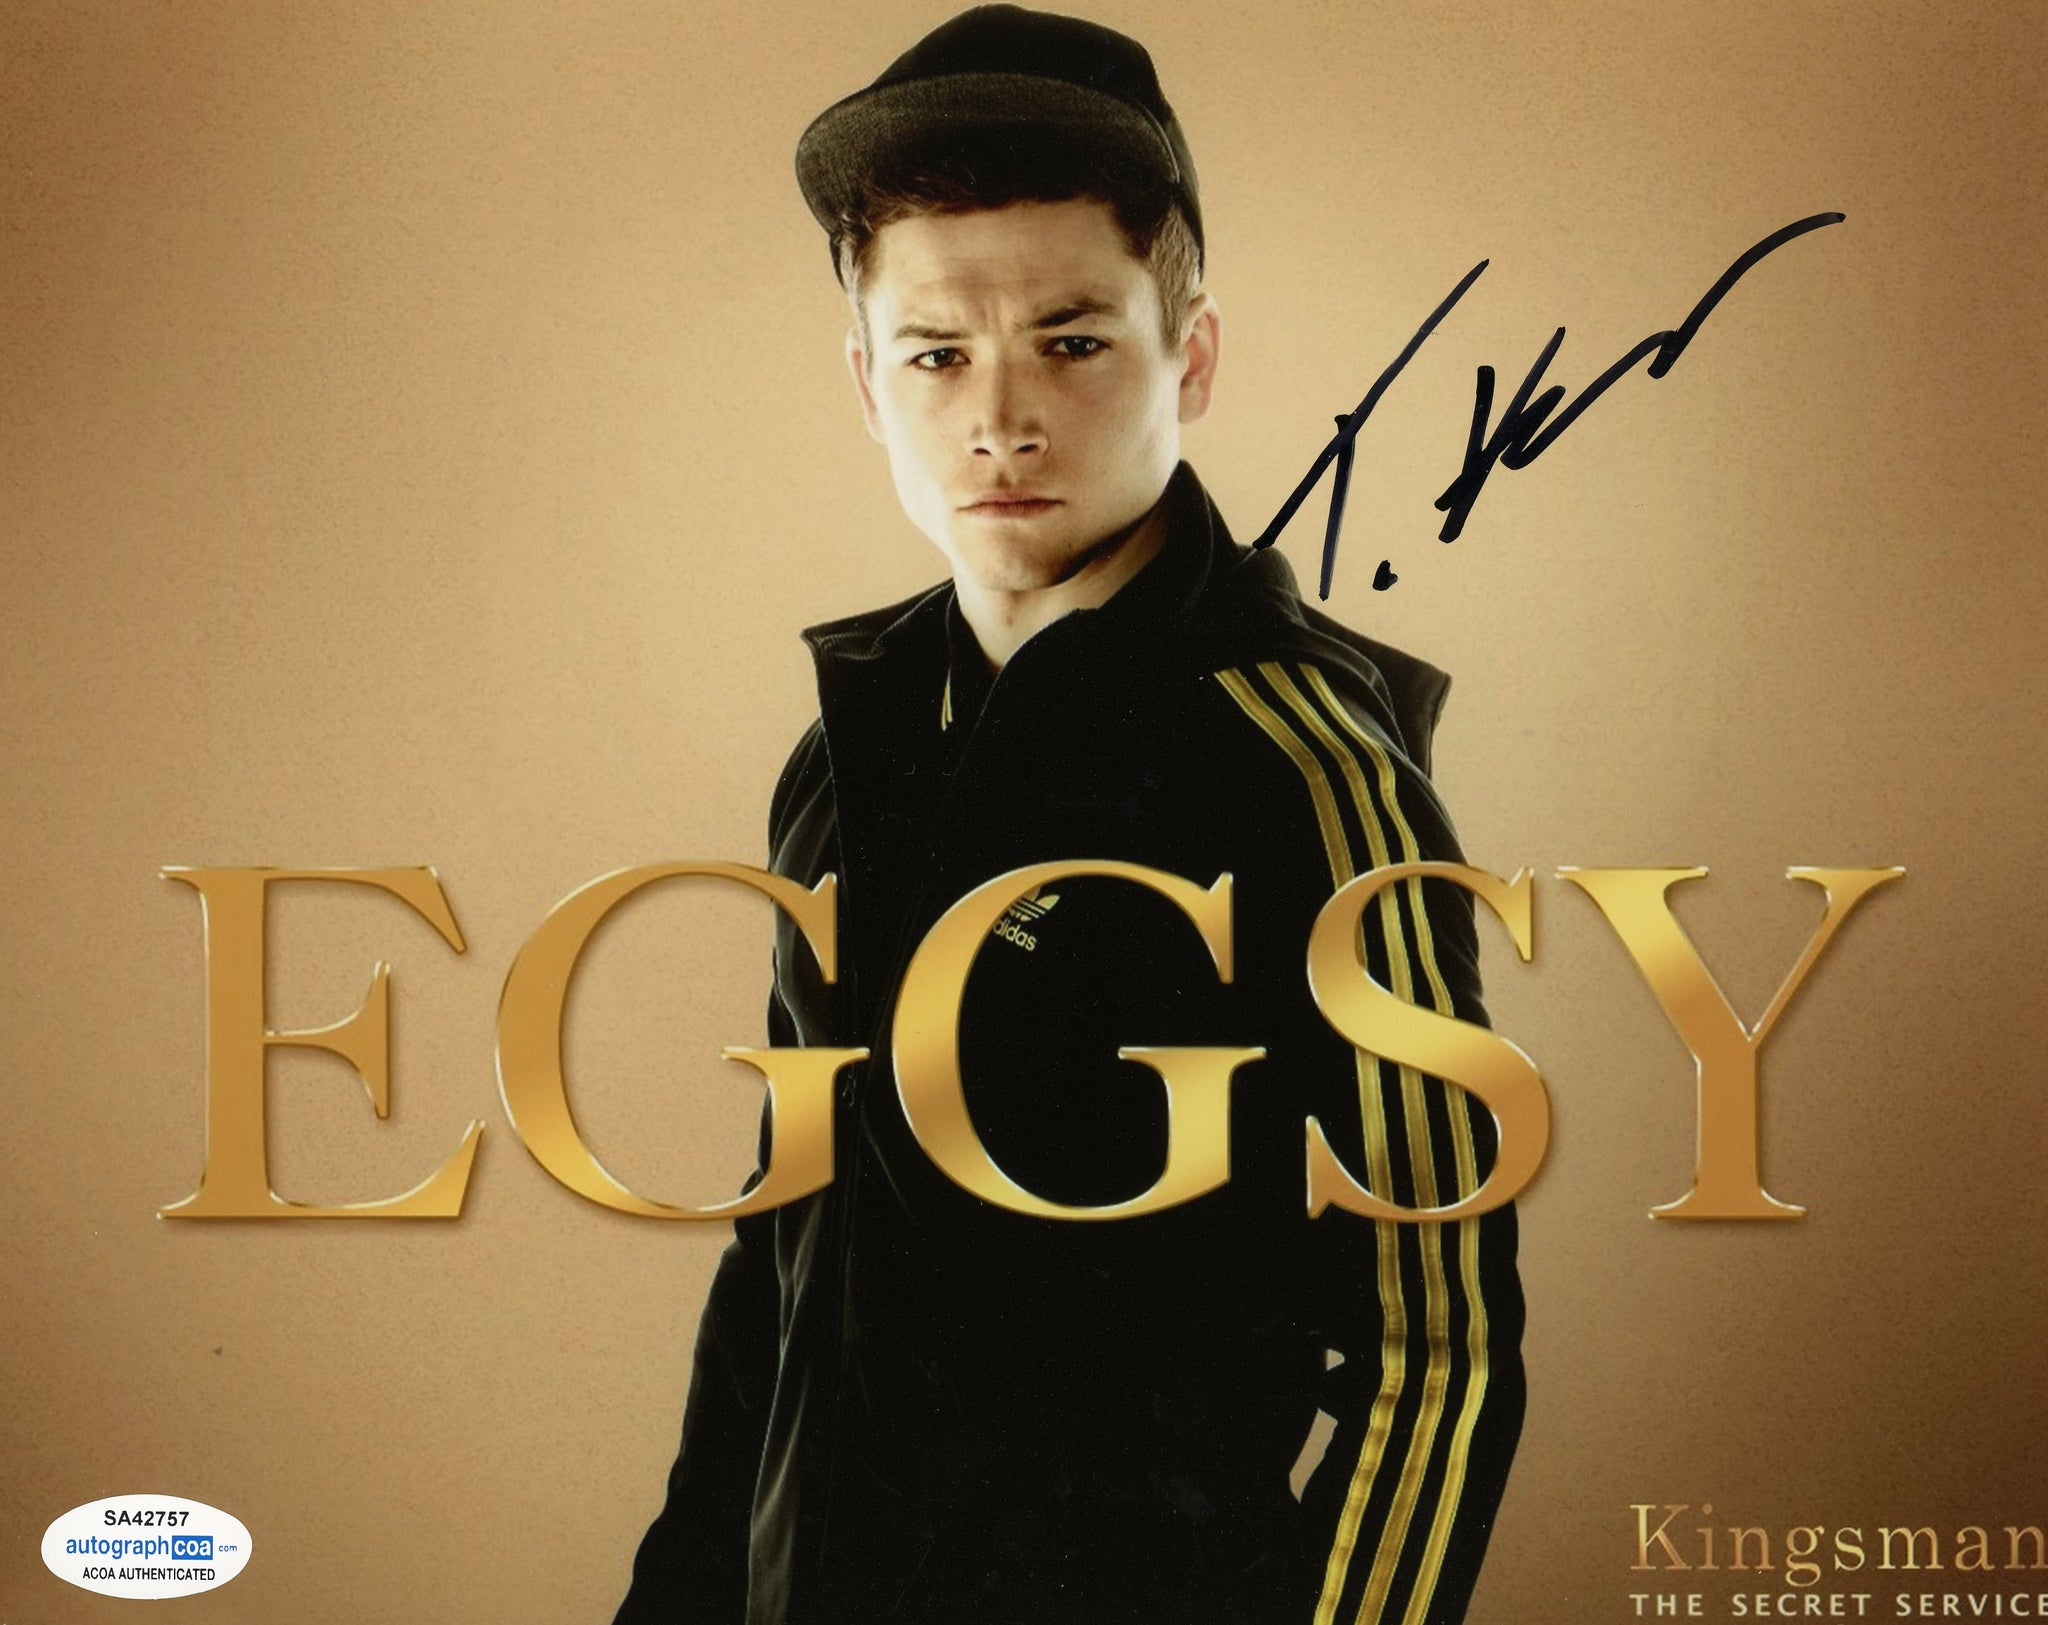 Taron Egerton Kingsman Signed Autograph 8x10 Photo ACOA #8